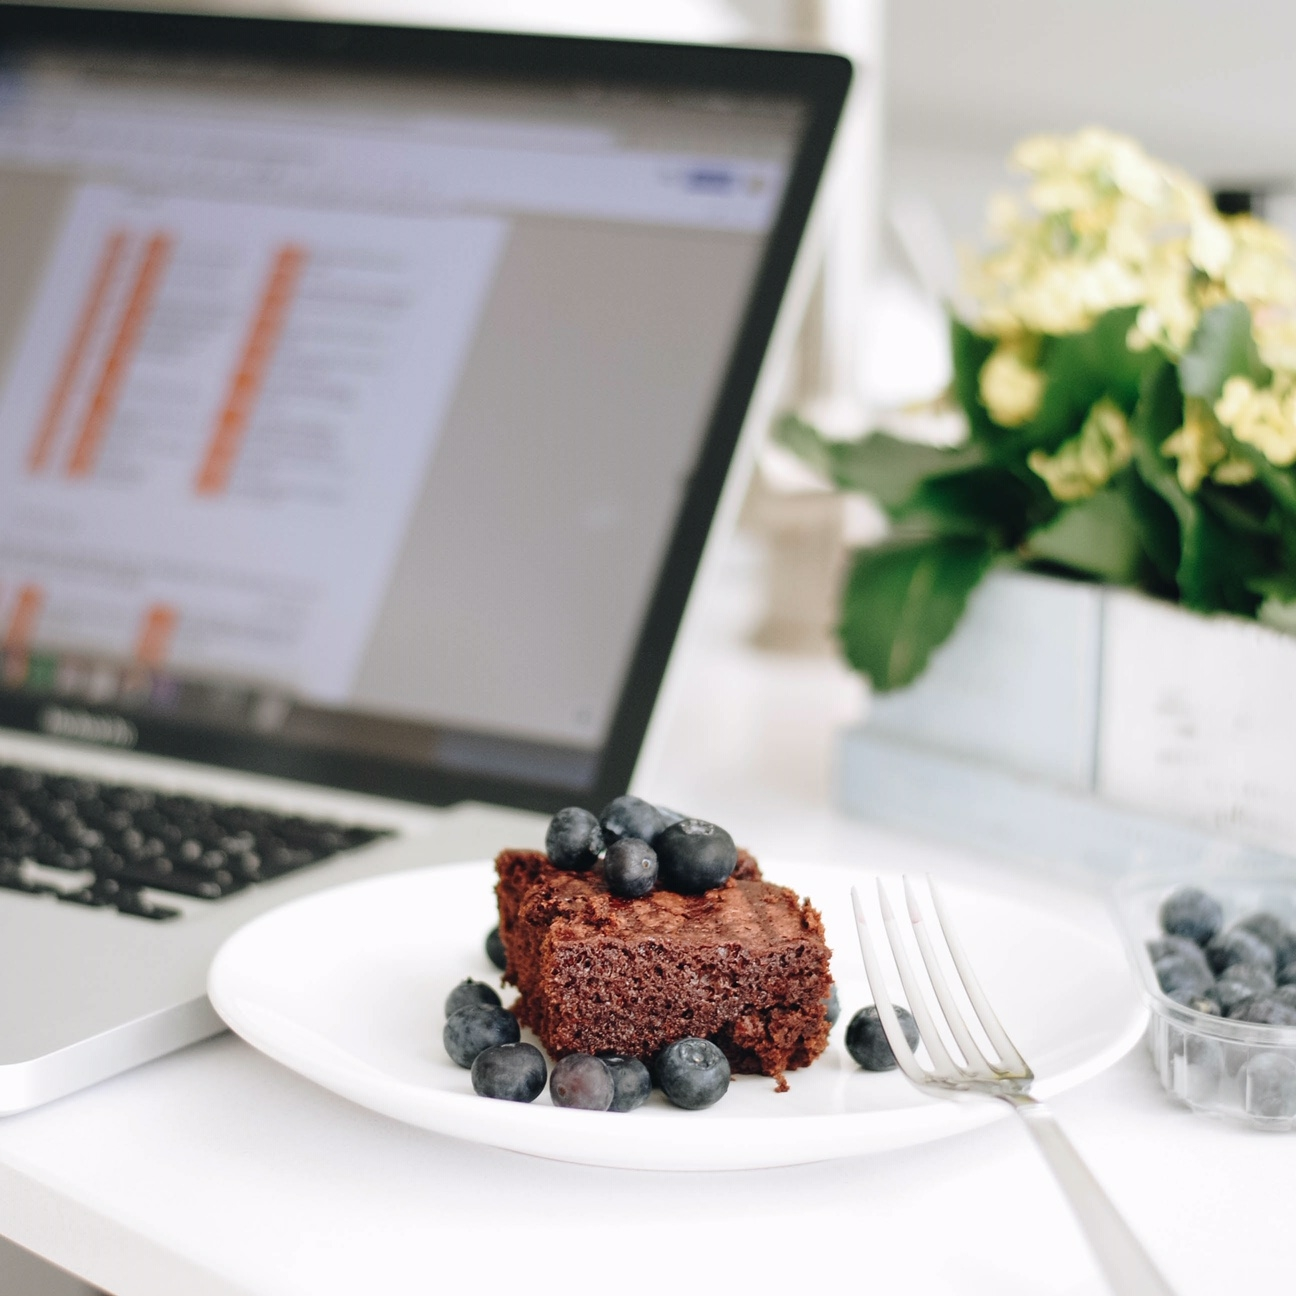 Mindful eating a work, make the healthy decision.